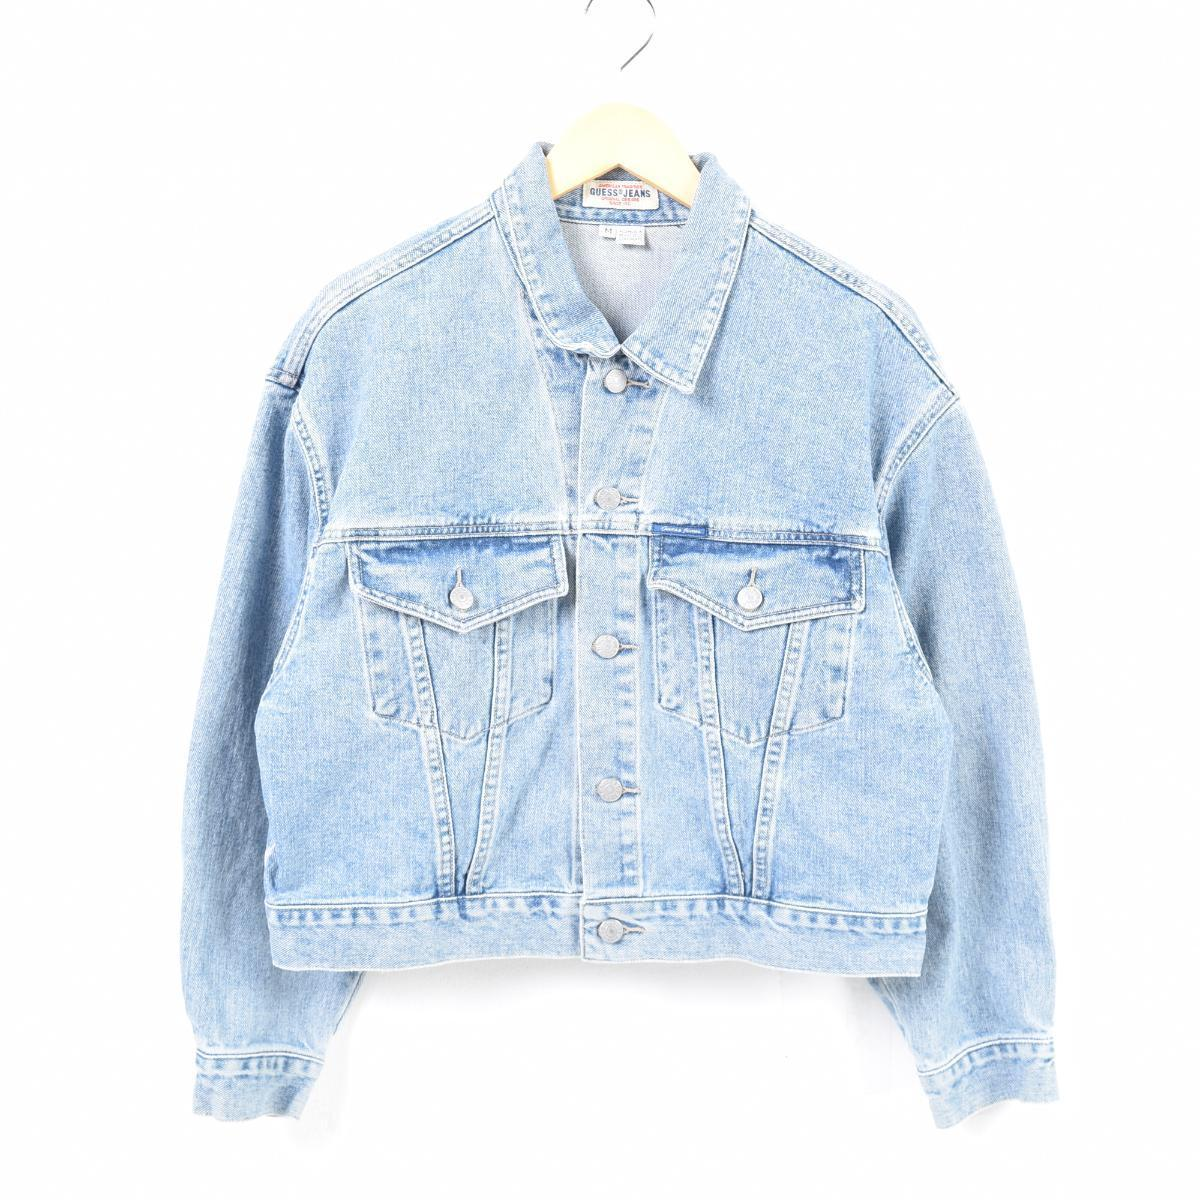 Vintage Clothing Jam 90s ゲス Guess Jeans Denim Jacket G Jean